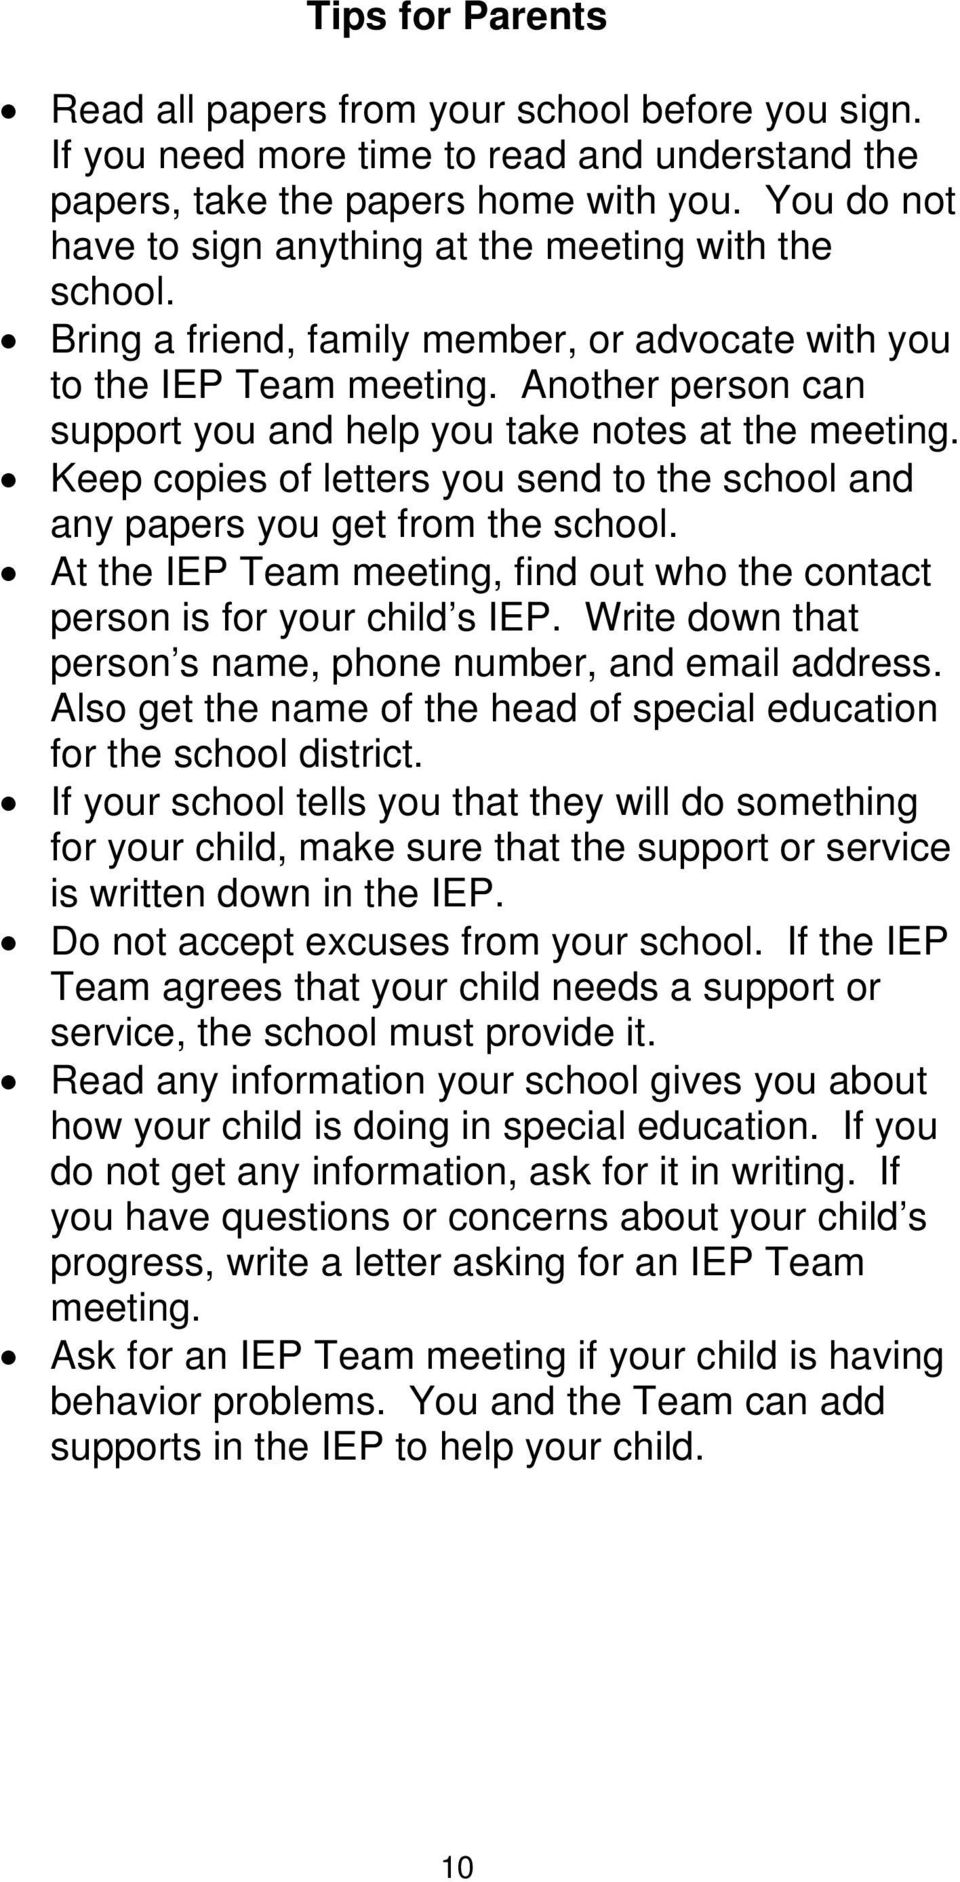 Another person can support you and help you take notes at the meeting. Keep copies of letters you send to the school and any papers you get from the school.